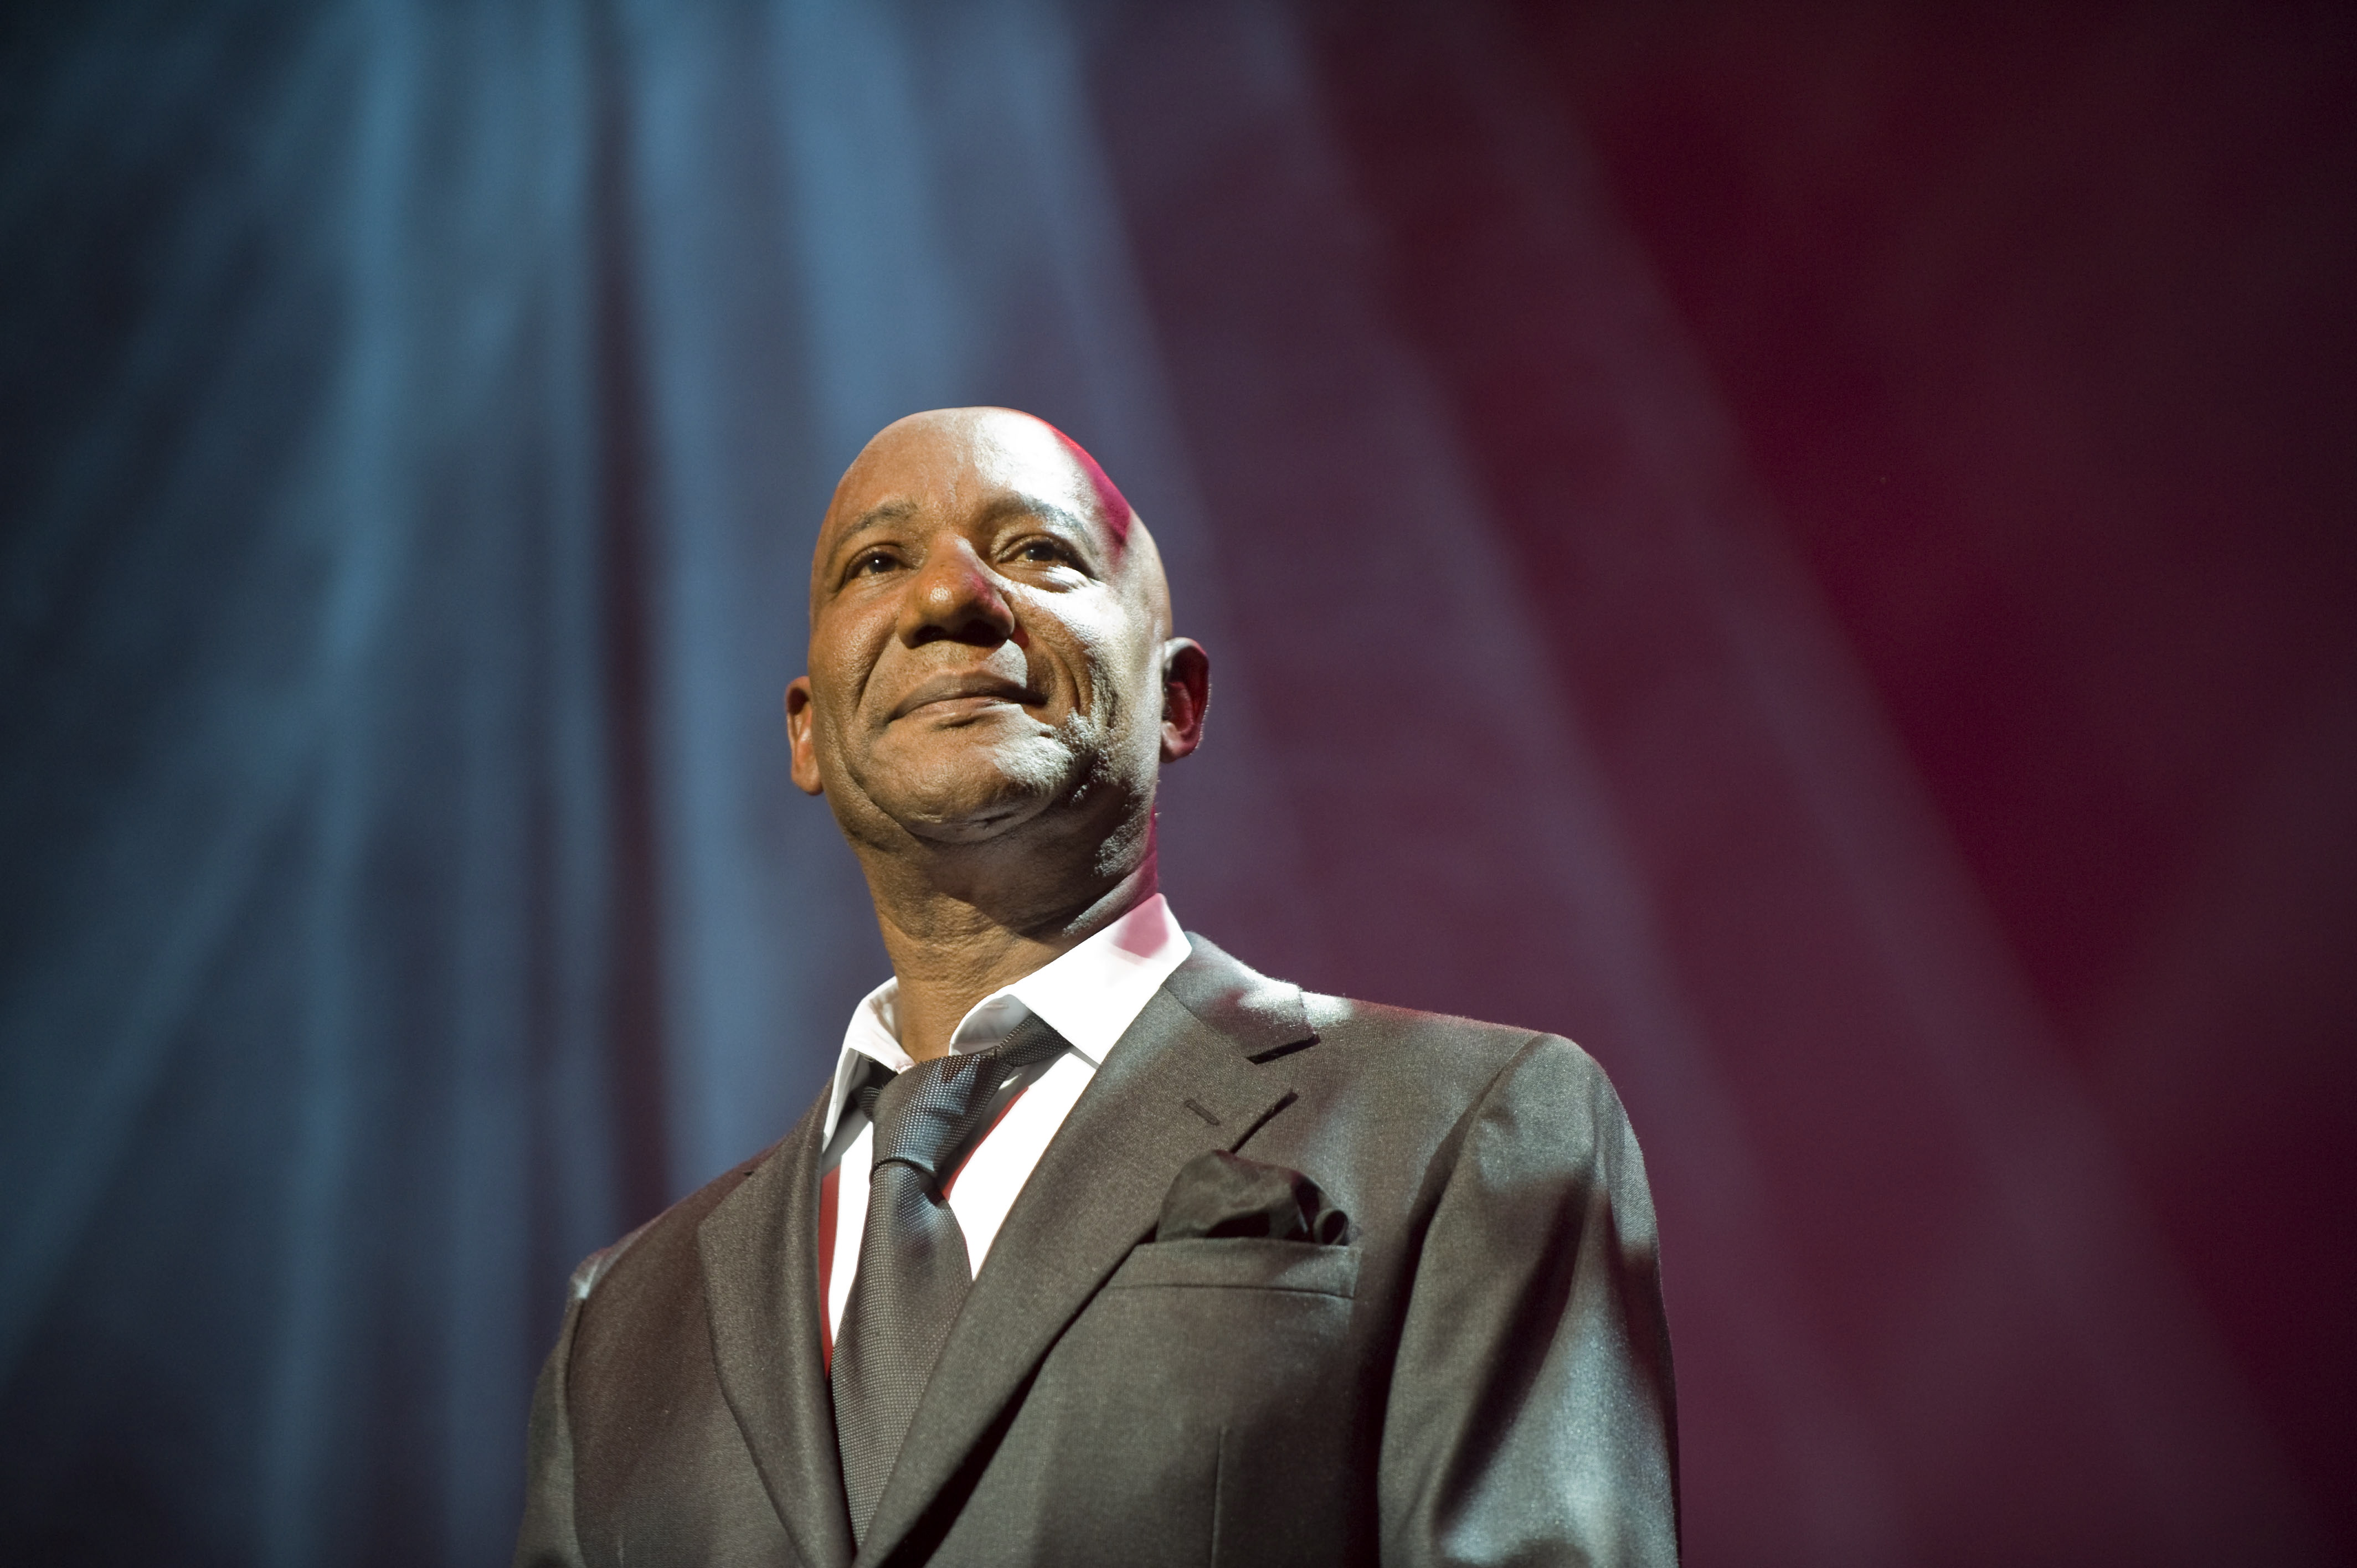 LONDON - FEBRUARY 13: Singer Errol Brown performs on stage during his farewell tour at the Indig02 on February 13, 2009 in Lo